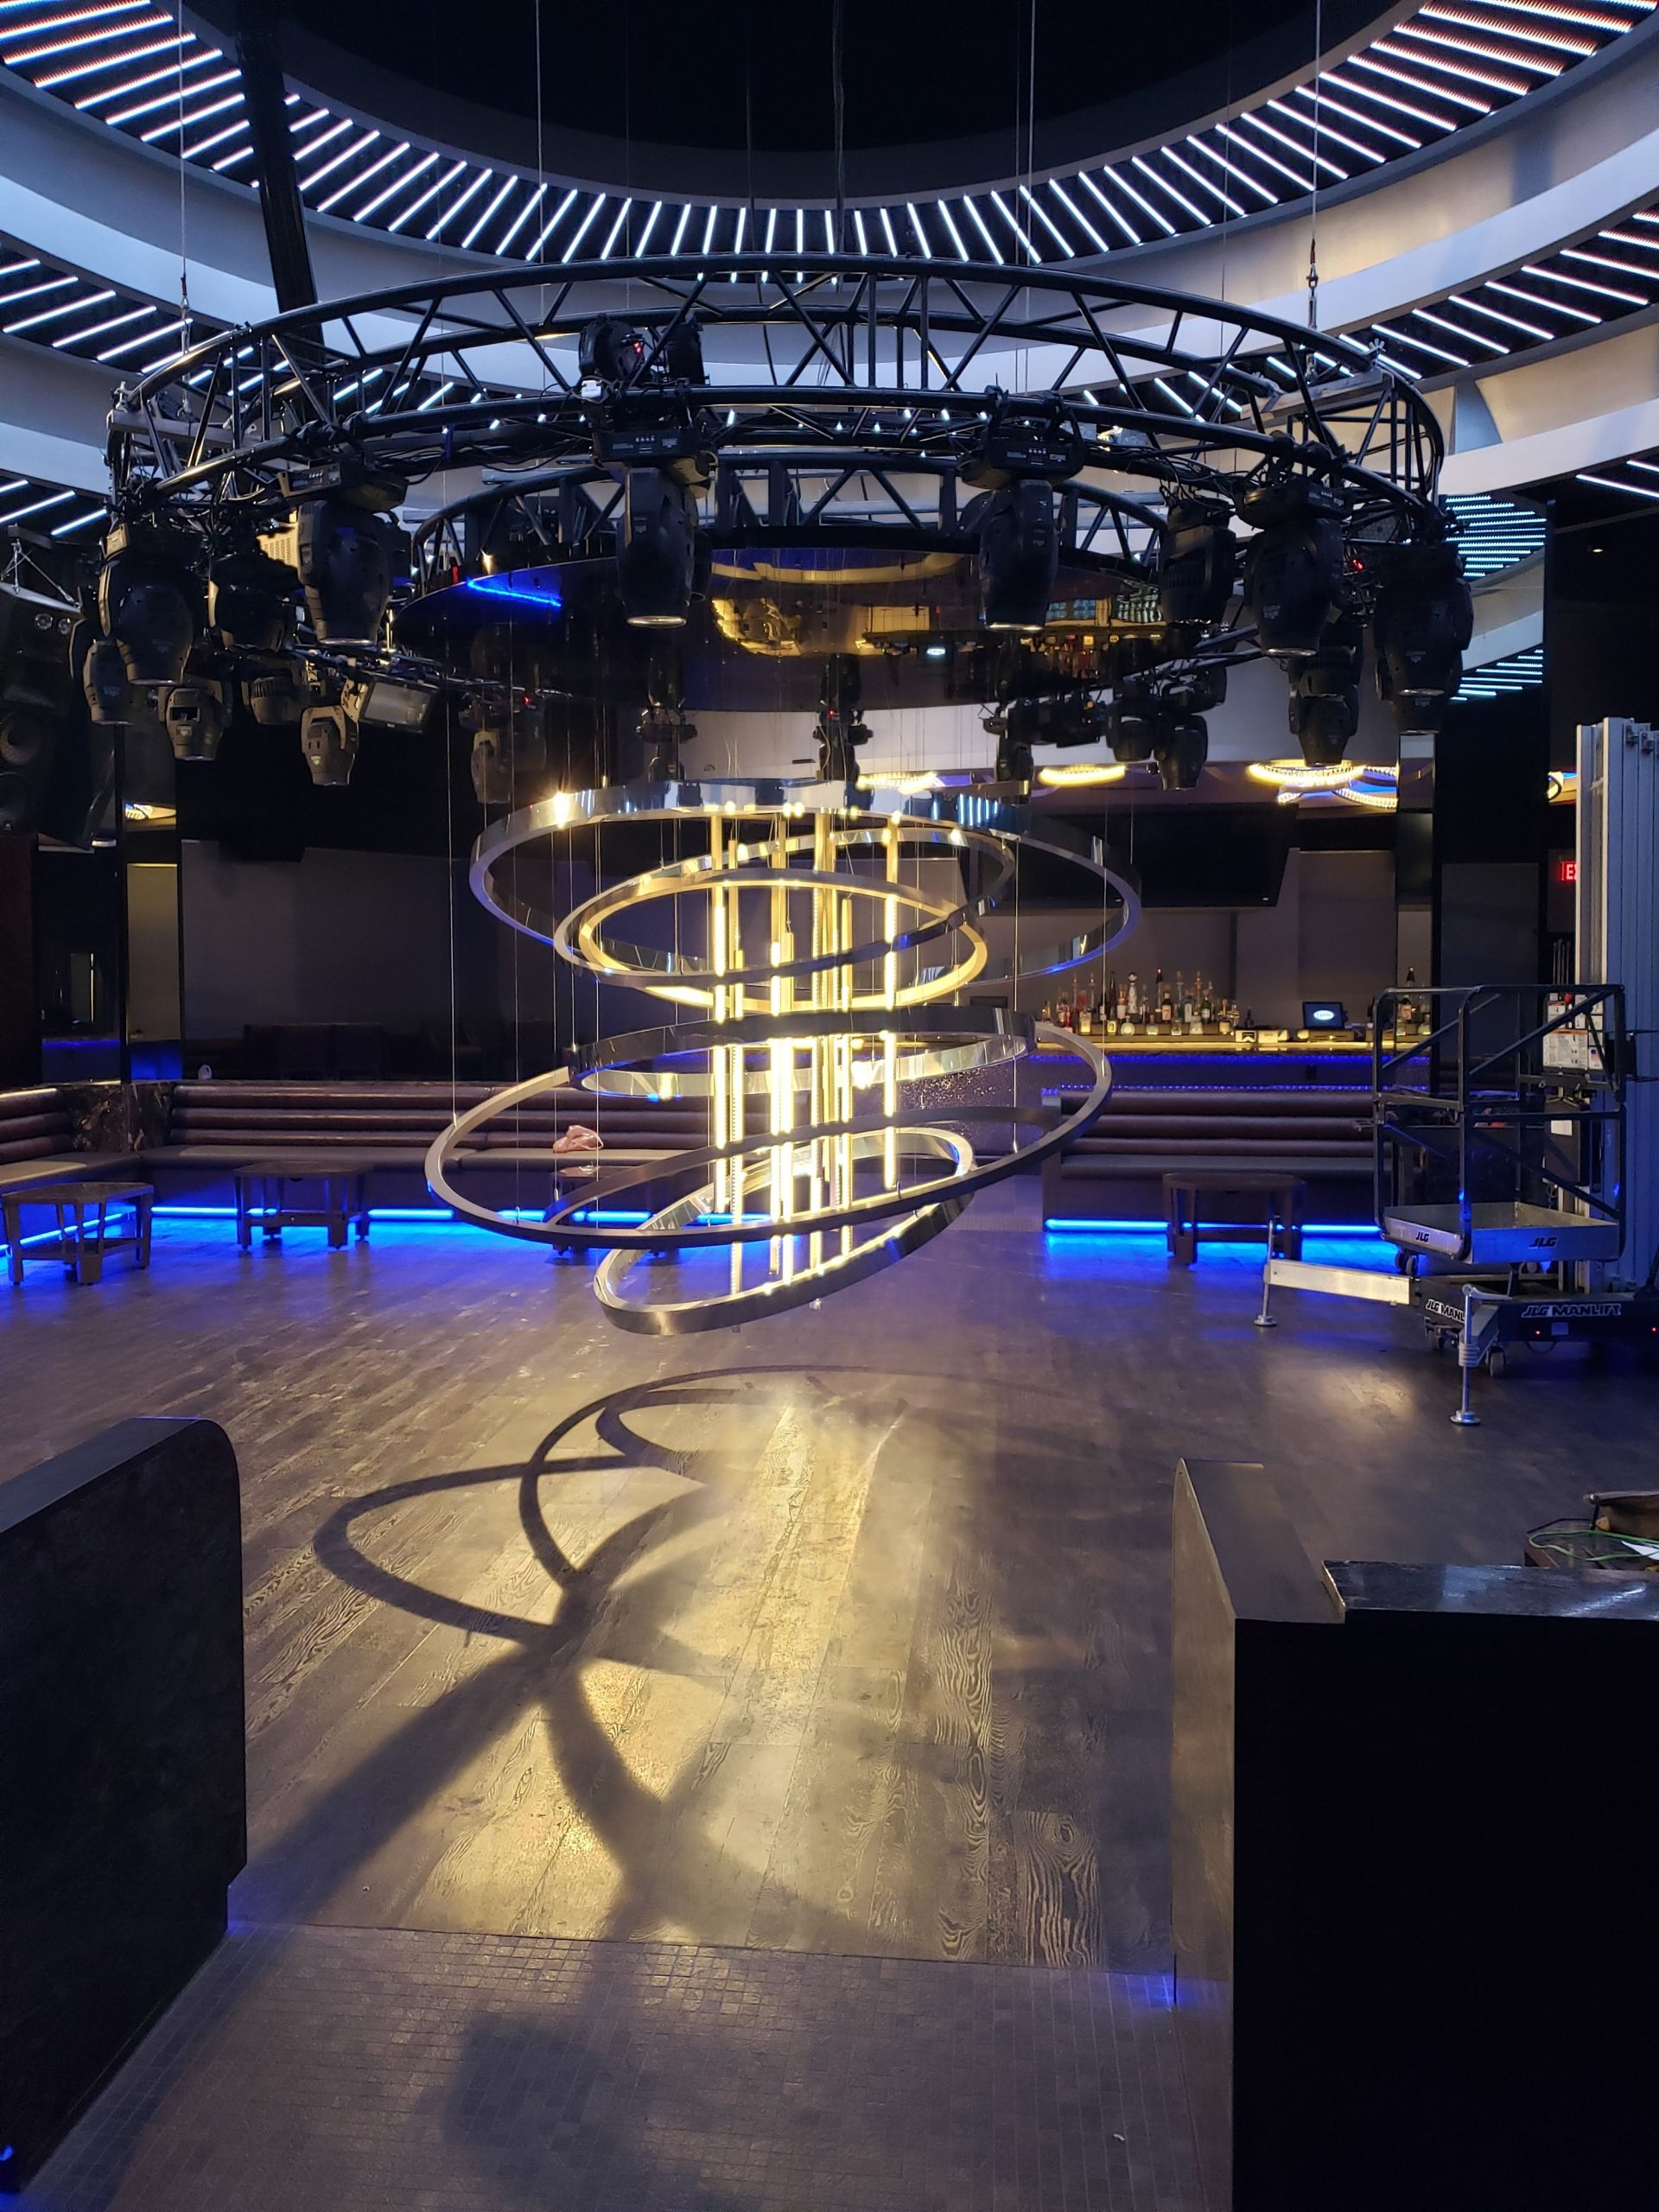 Seminole Hard Rock Hotel & Casino's rigging solution in the form of a self-climbing circular chandelier hoist that's set inside a ring-shaped lighting truss.